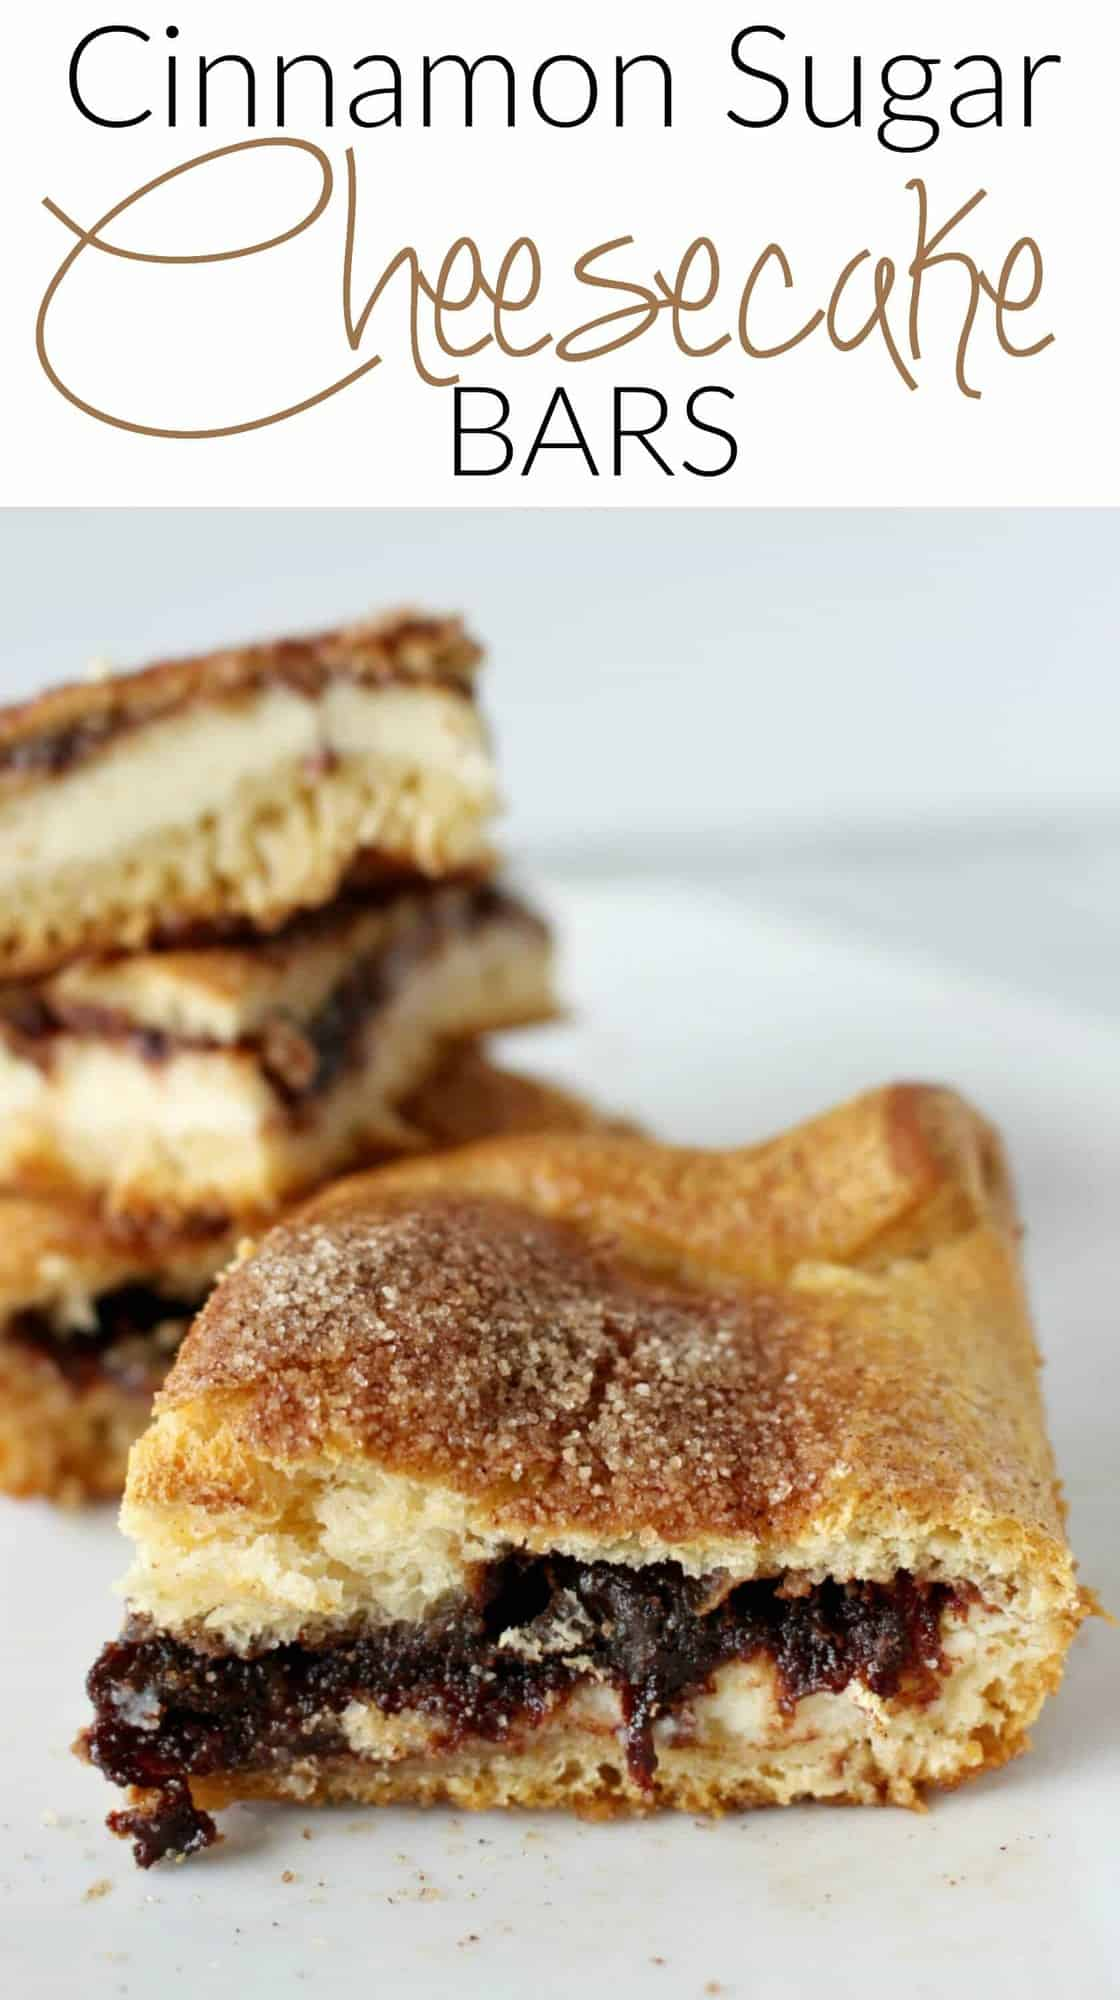 Cinnamon Sugar Crescent Cheesecake Bars - looking for an easy dessert that everyone will love? Look no further!